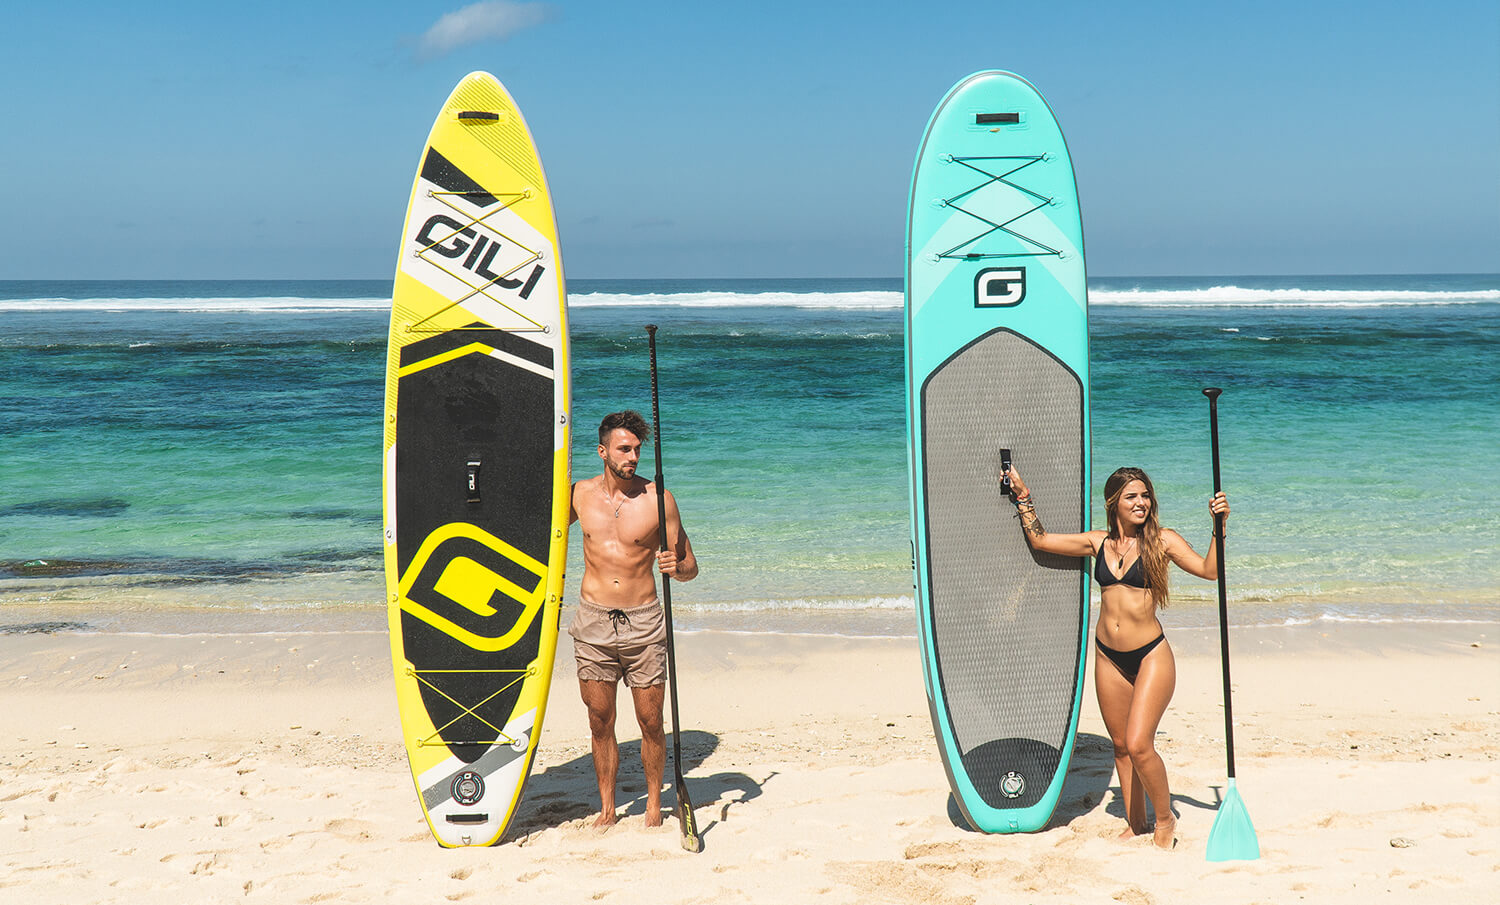 GILI Sports Paddle Boards About Us